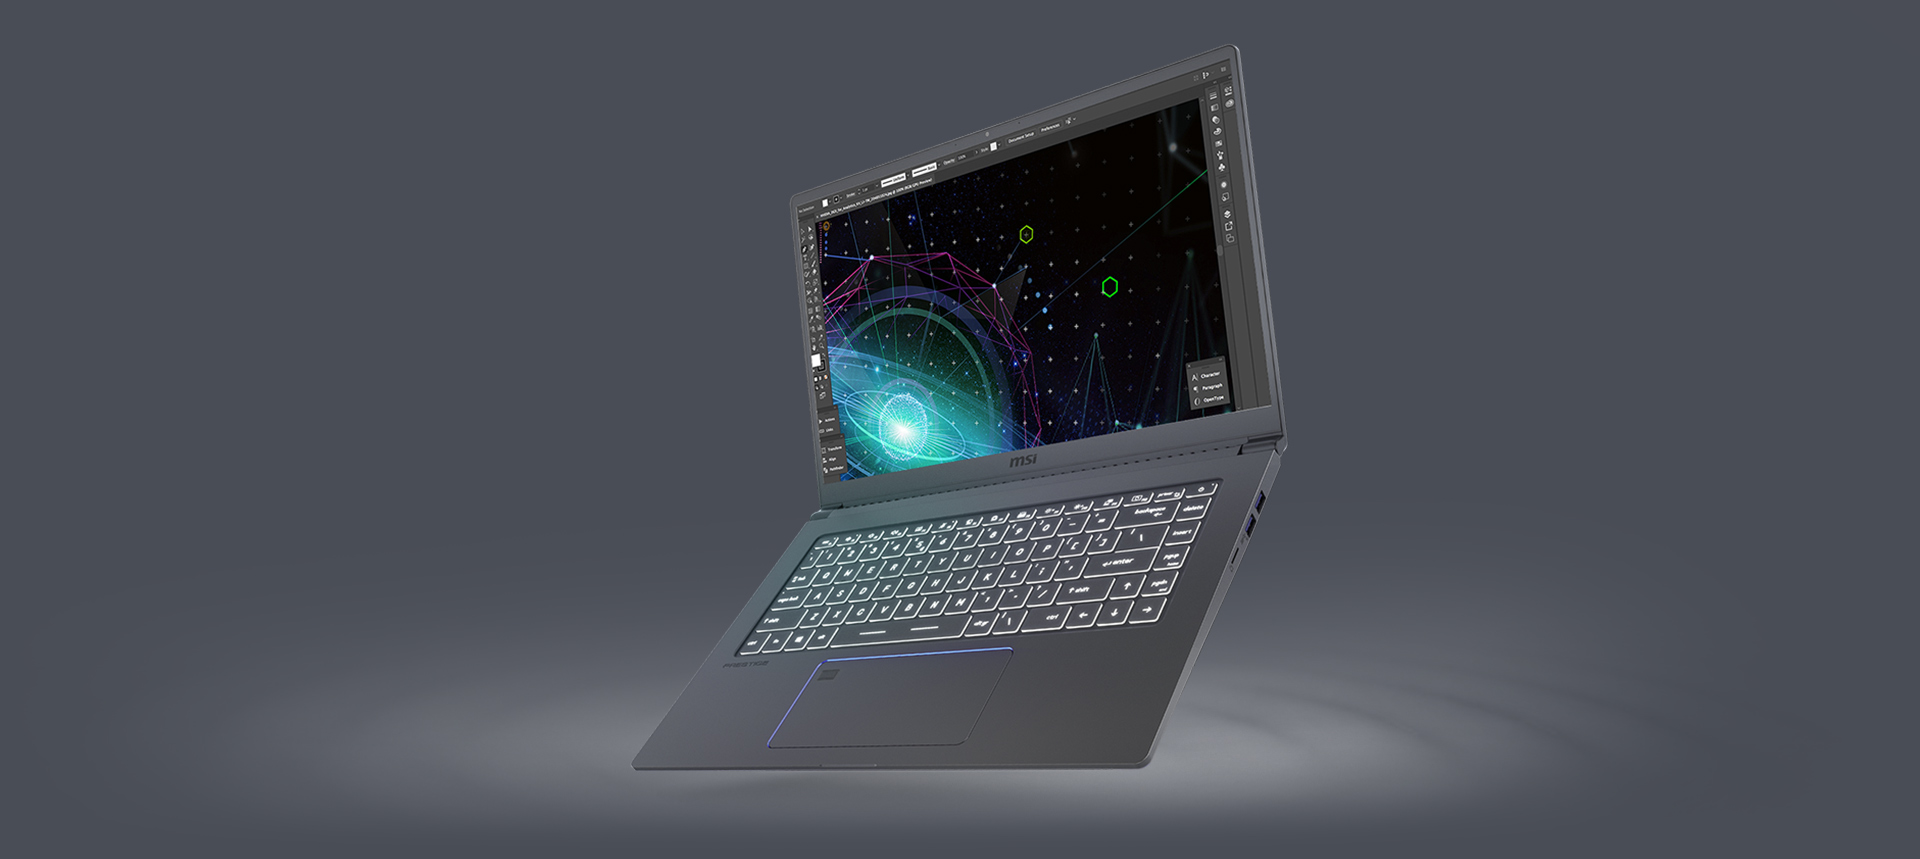 Prestige 15 Opens Widely and Angled to Left A Little with Video Editing on Its Screen